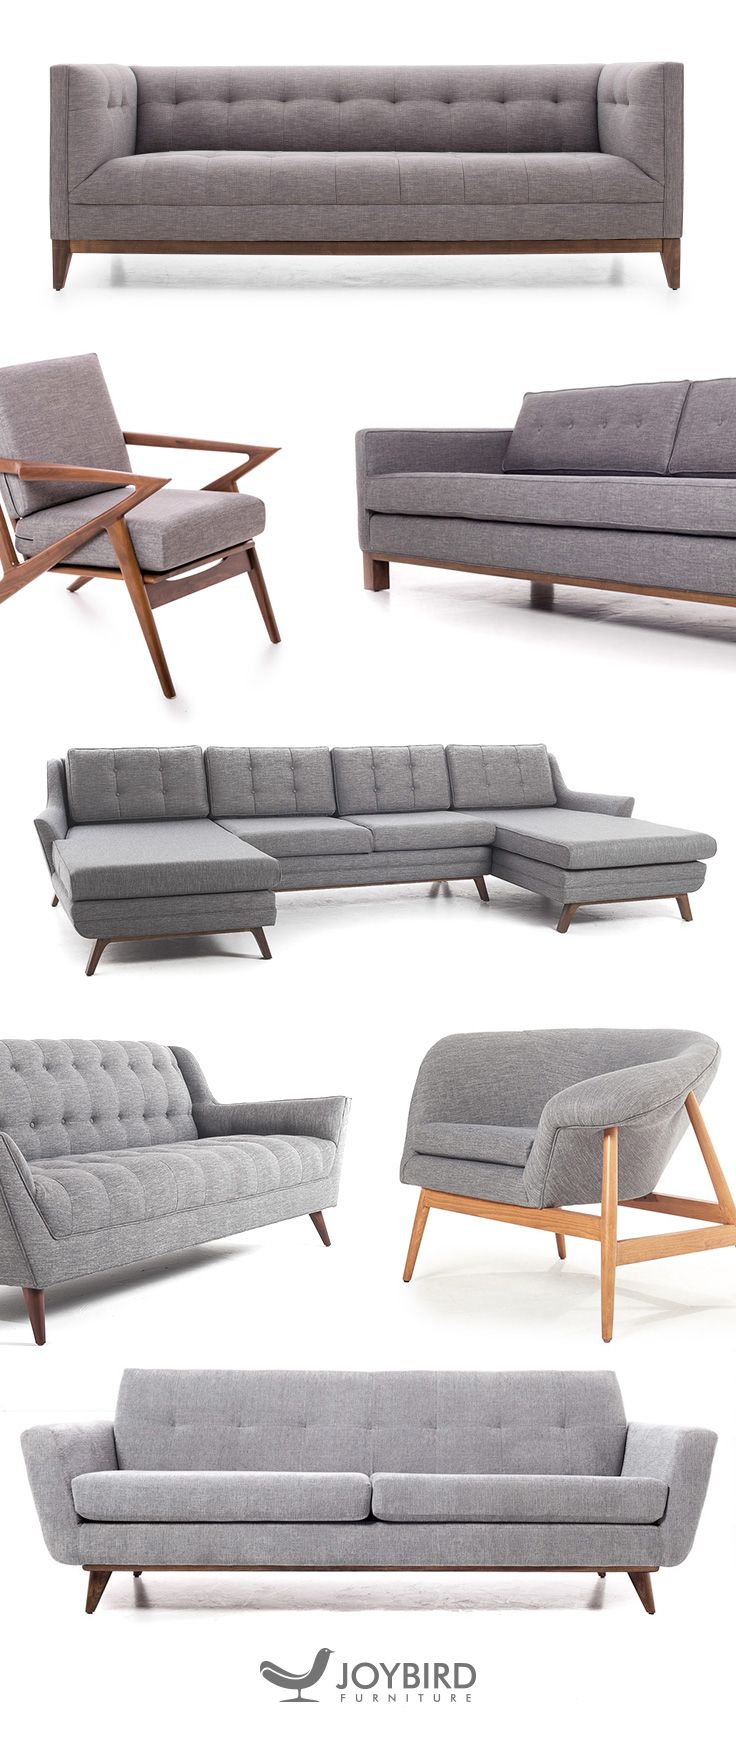 Get premium quality furniture made just for you with Joybird. With ...